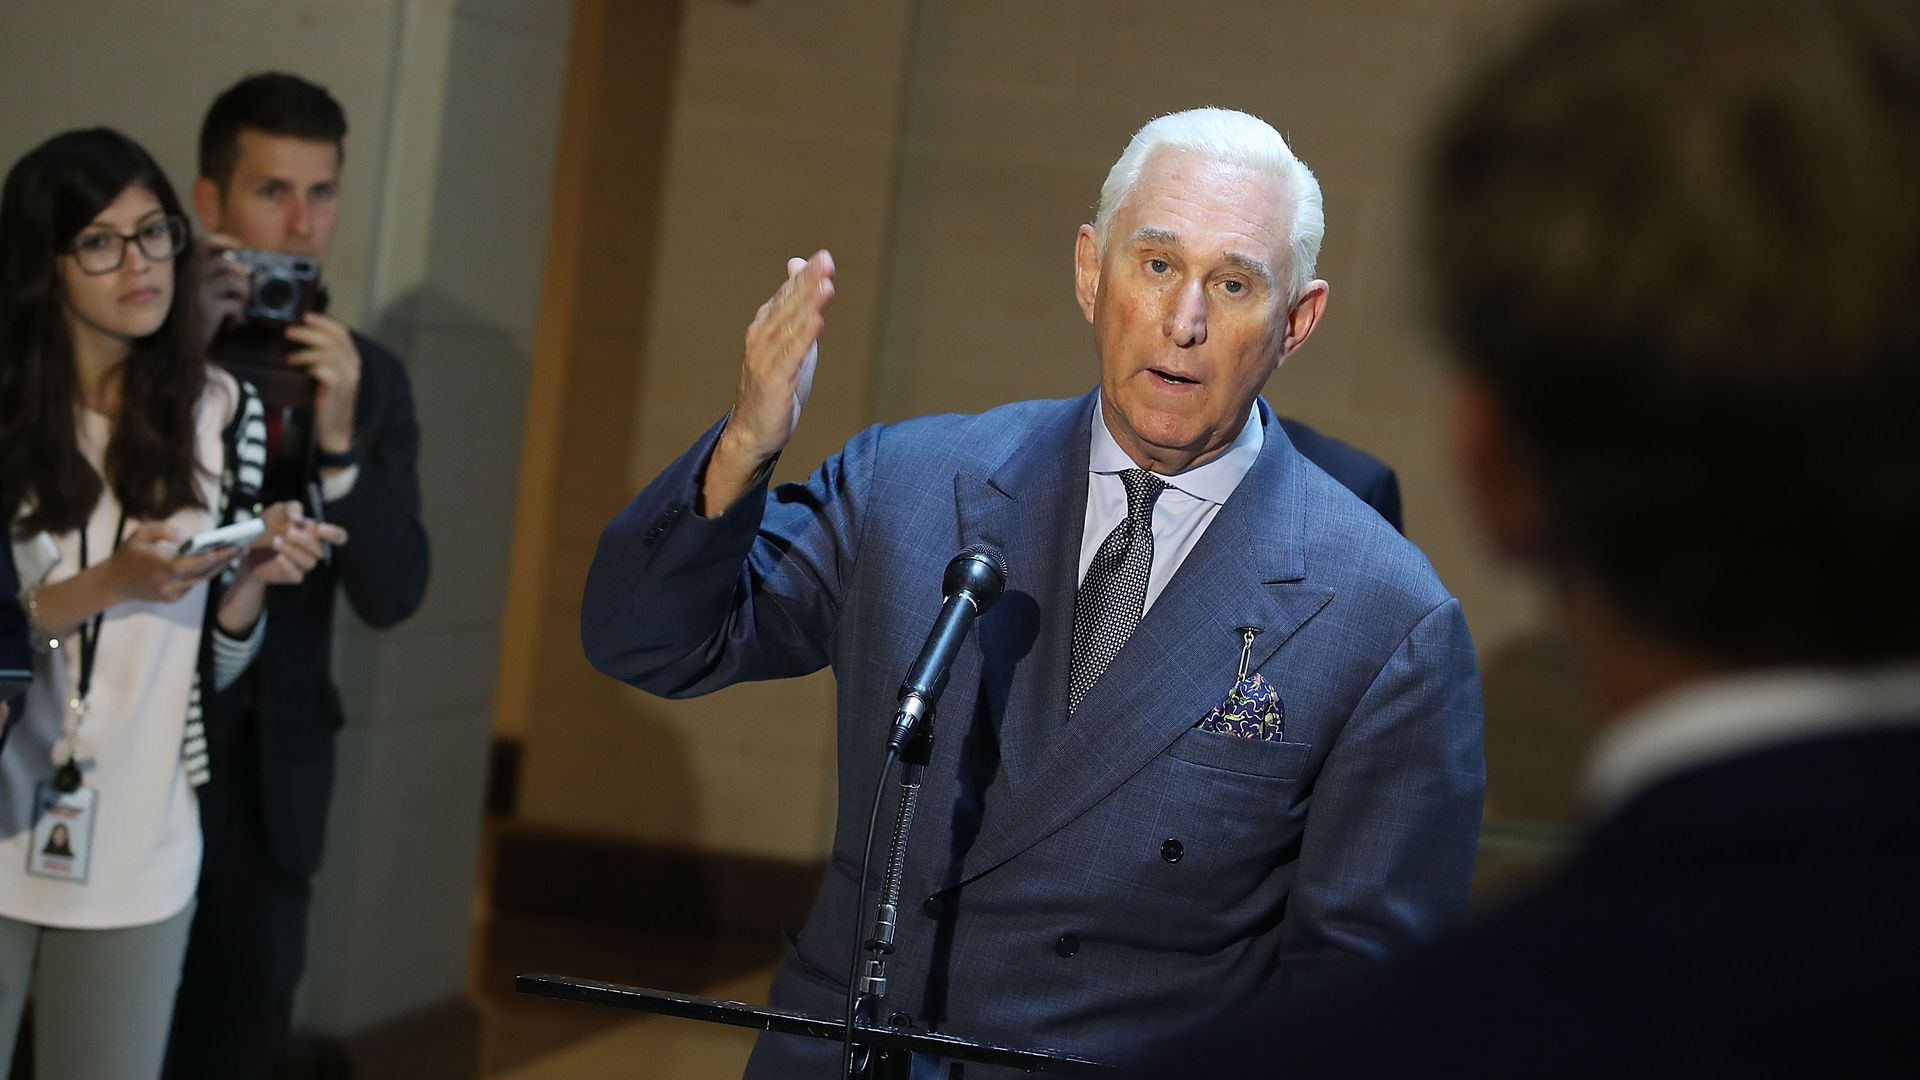 Roger Stone, former adviser and confidant to President Trump.